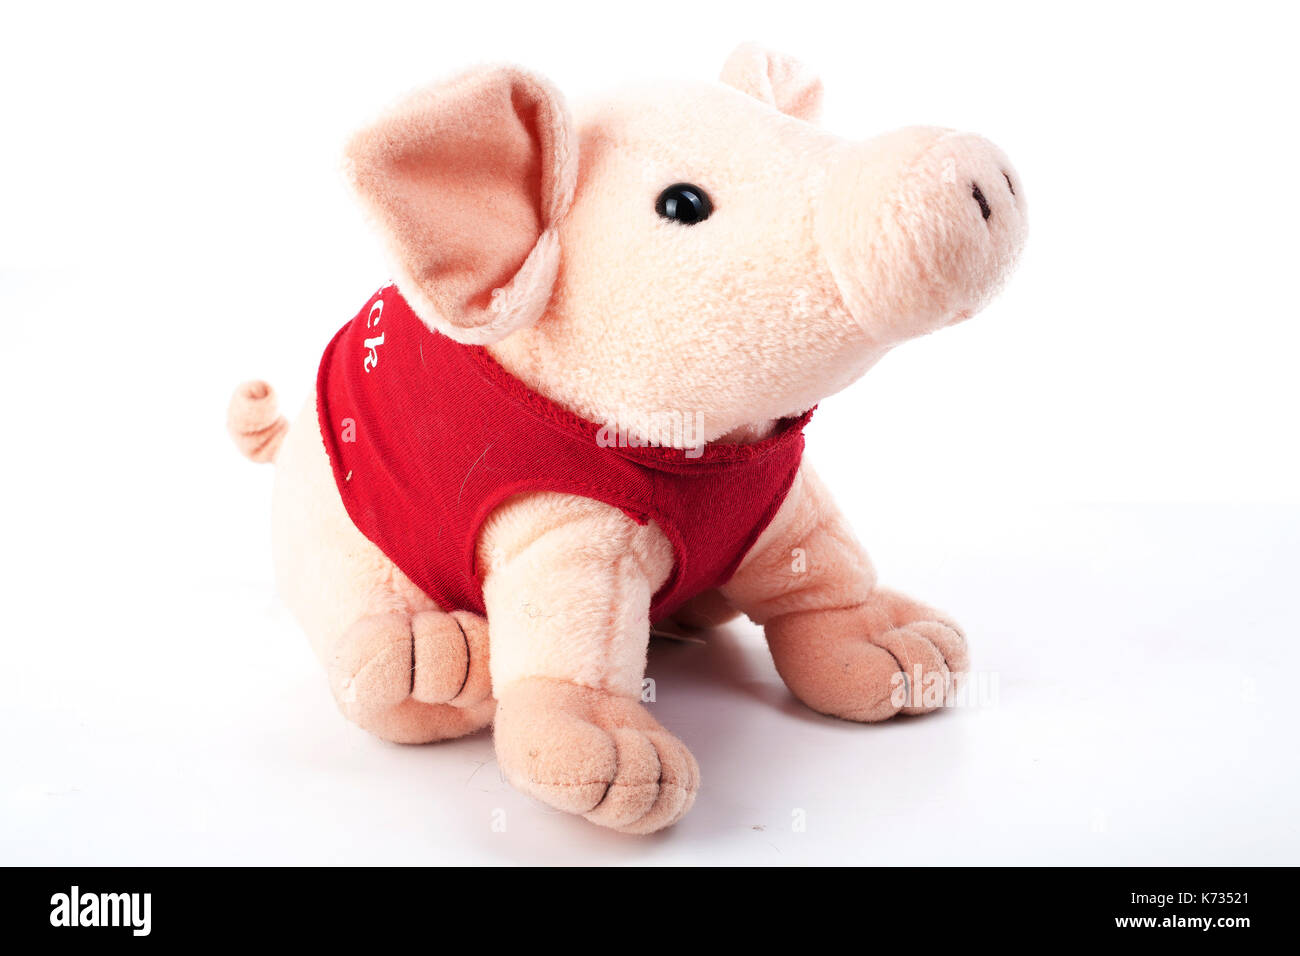 Luck Pig Toy Plush Soft Toy Symbol Of Good Luck Happy New Year